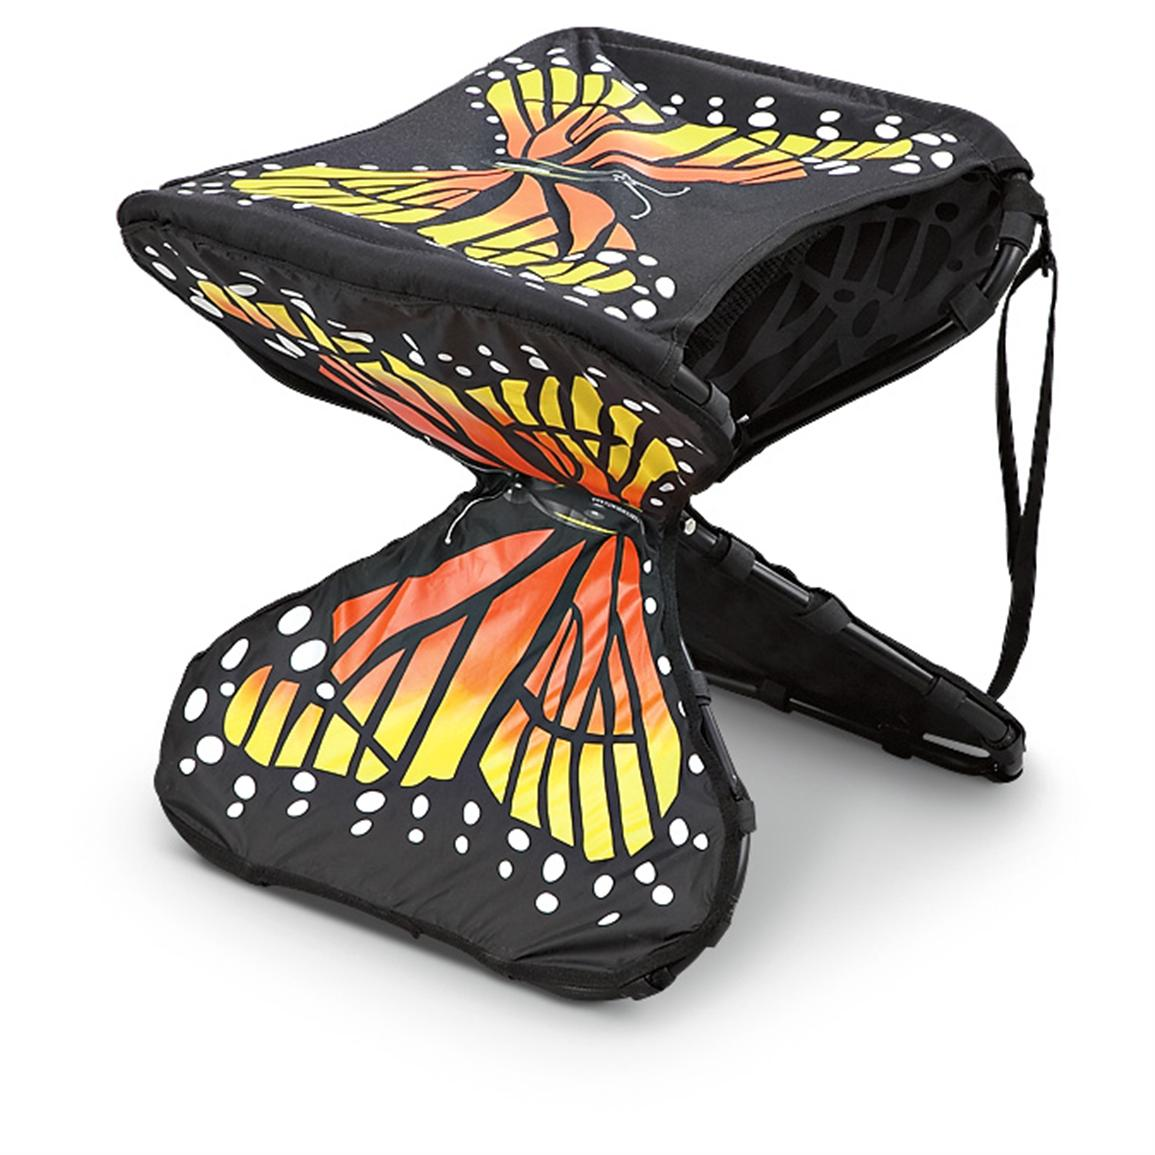 Folding Butterfly Chair Patio Furniture at Sportsman s Guide